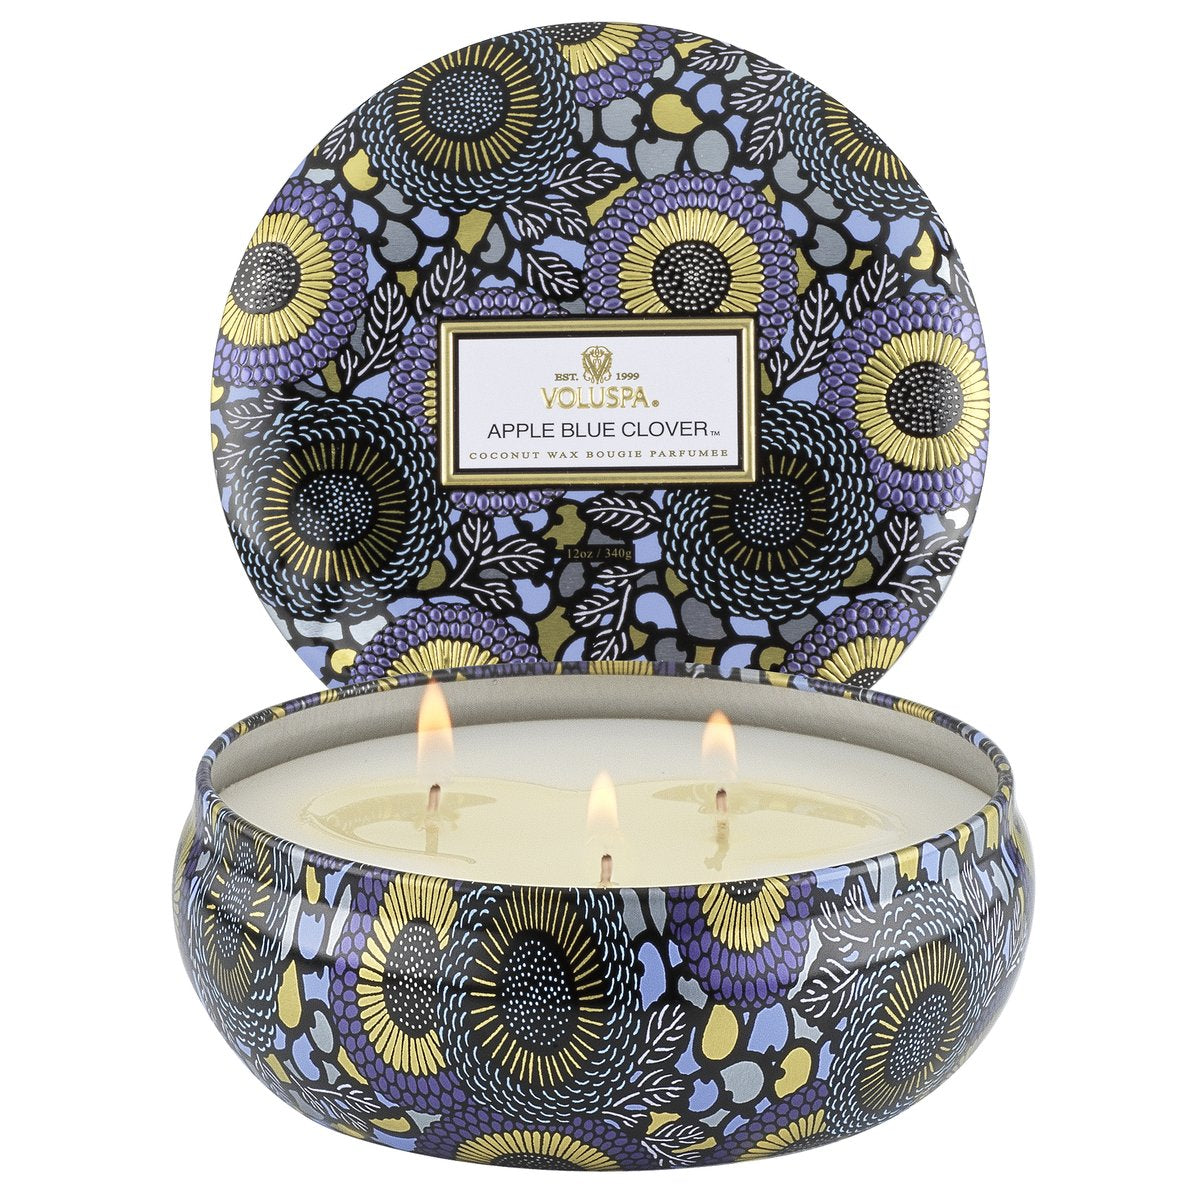 Apple Blue Clover 3 Wick Candle in Decorative Tin